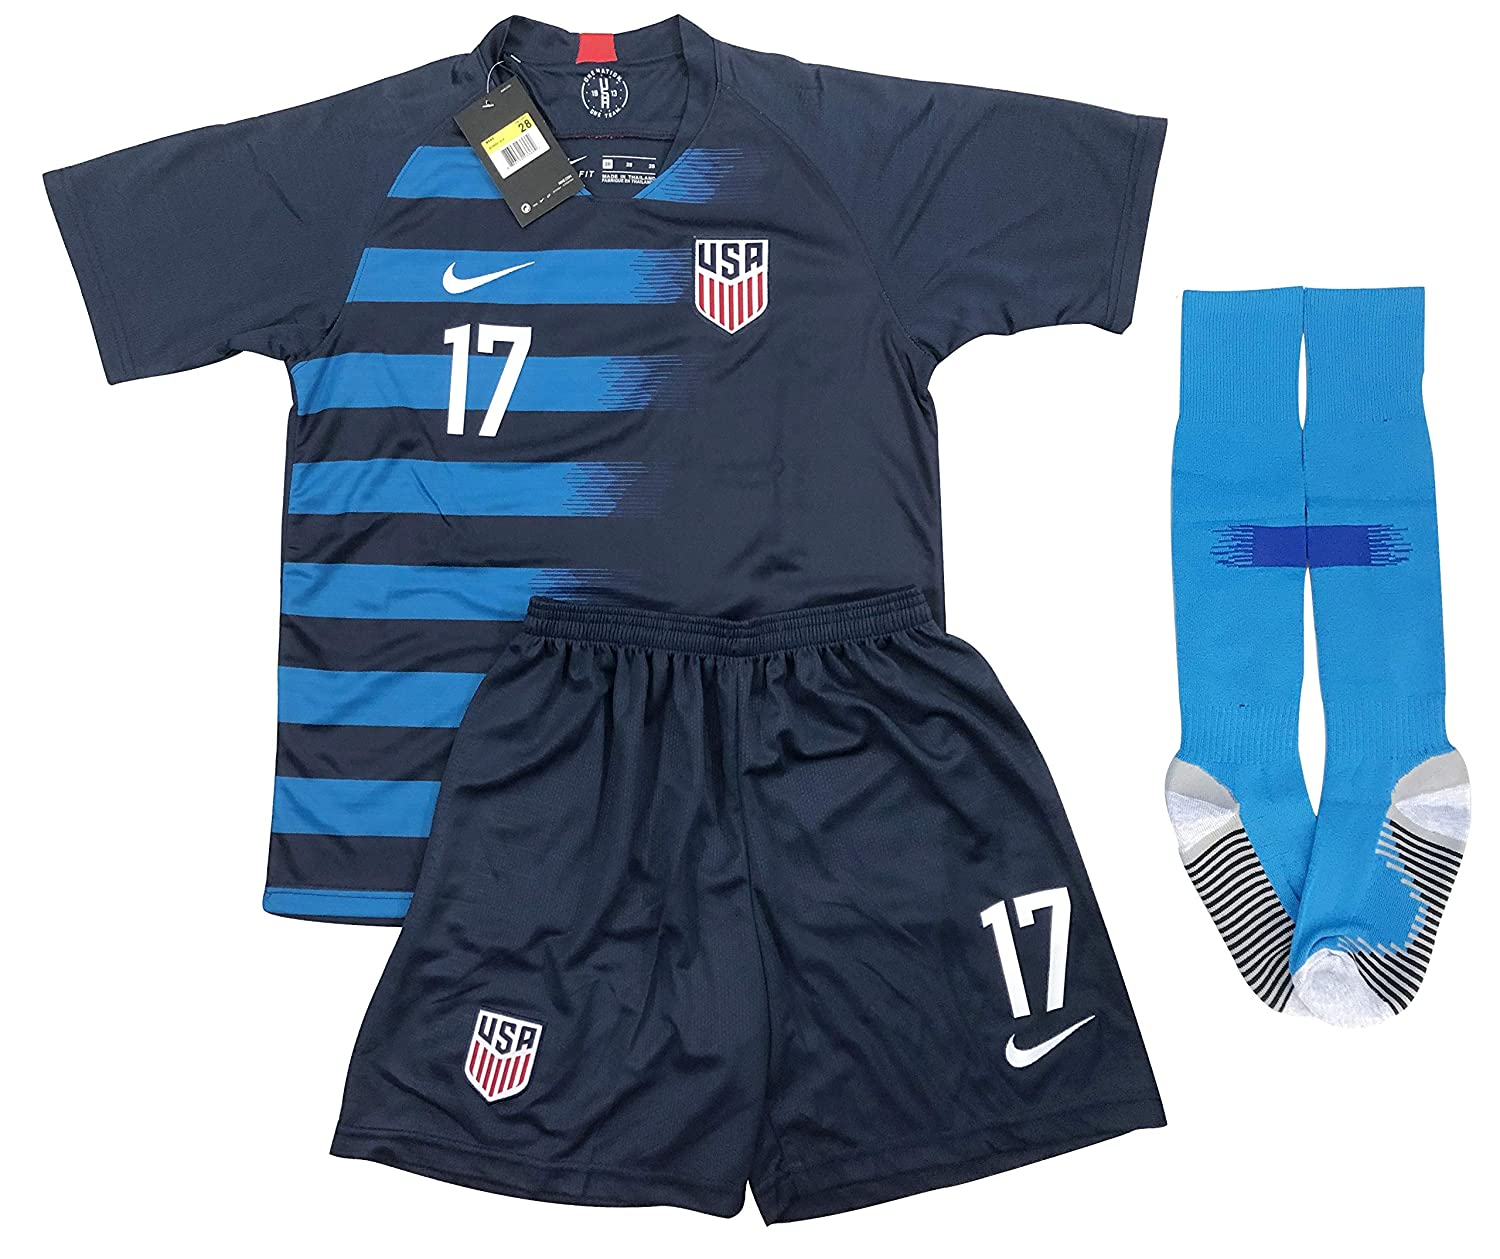 f299752be8c Amazon.com: New 2019 Tobin Heath #17 USA National Team Away Soccer Jersey  Shorts & Socks for Kids/Youths: Clothing